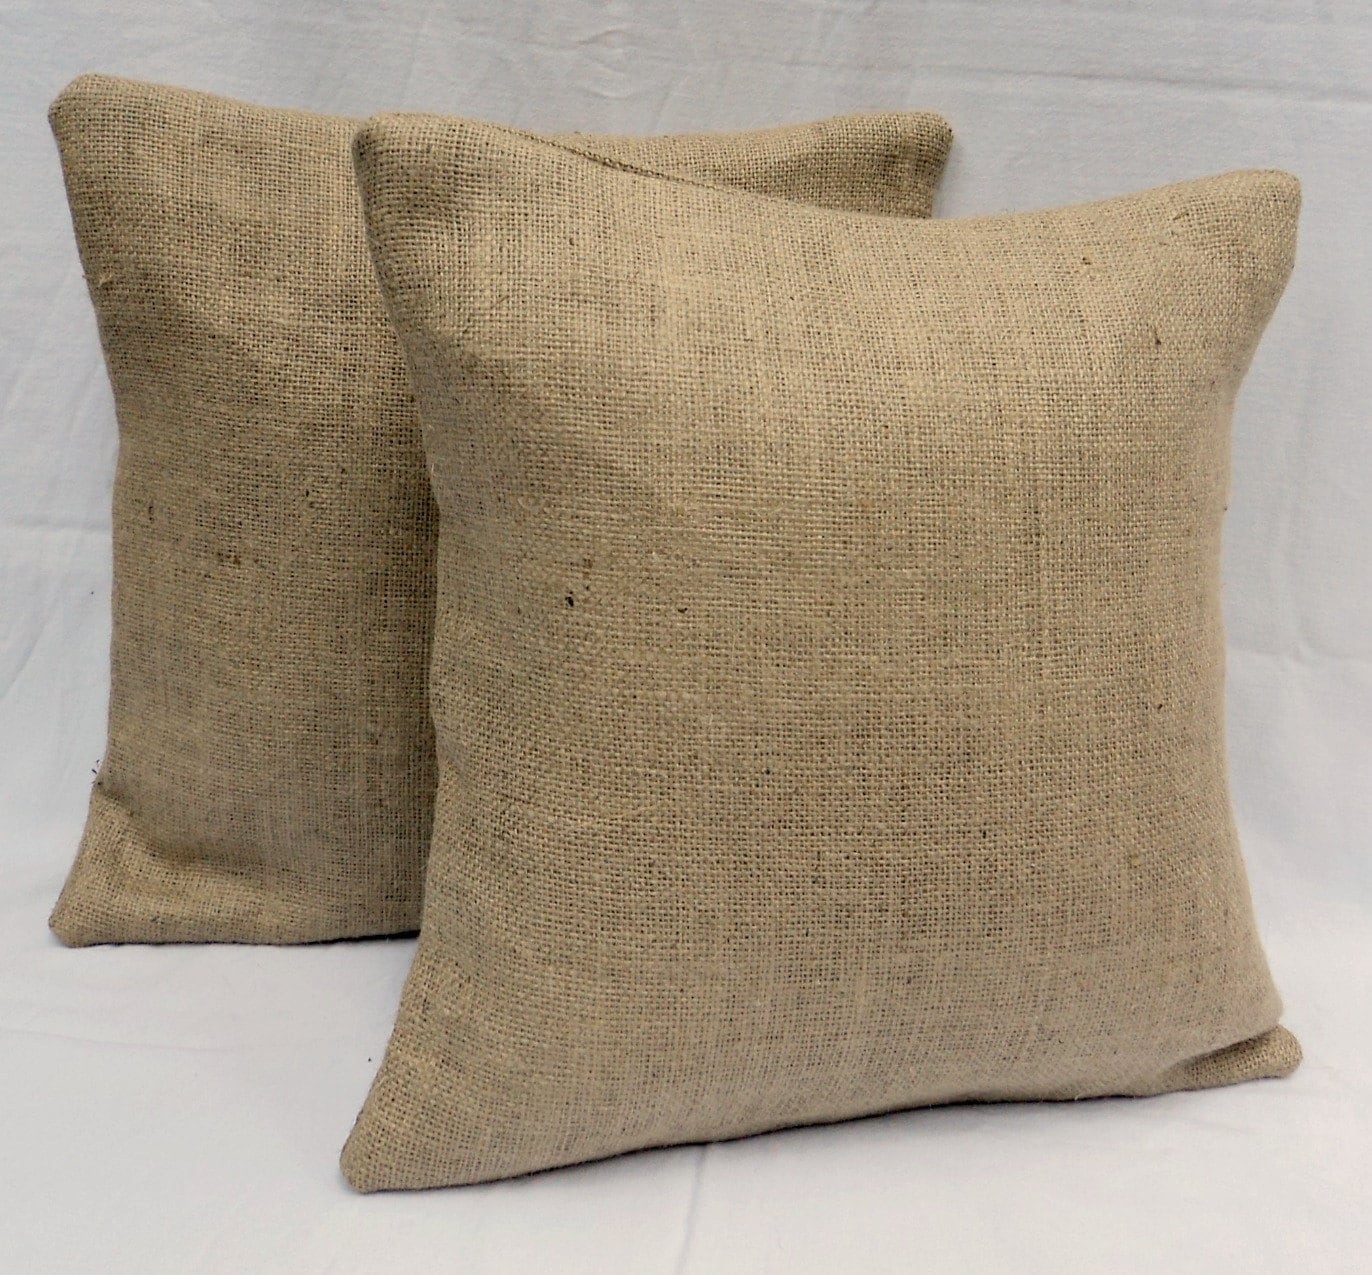 Burlap Pillows Set of 17 17 x 17 Burlap Throw